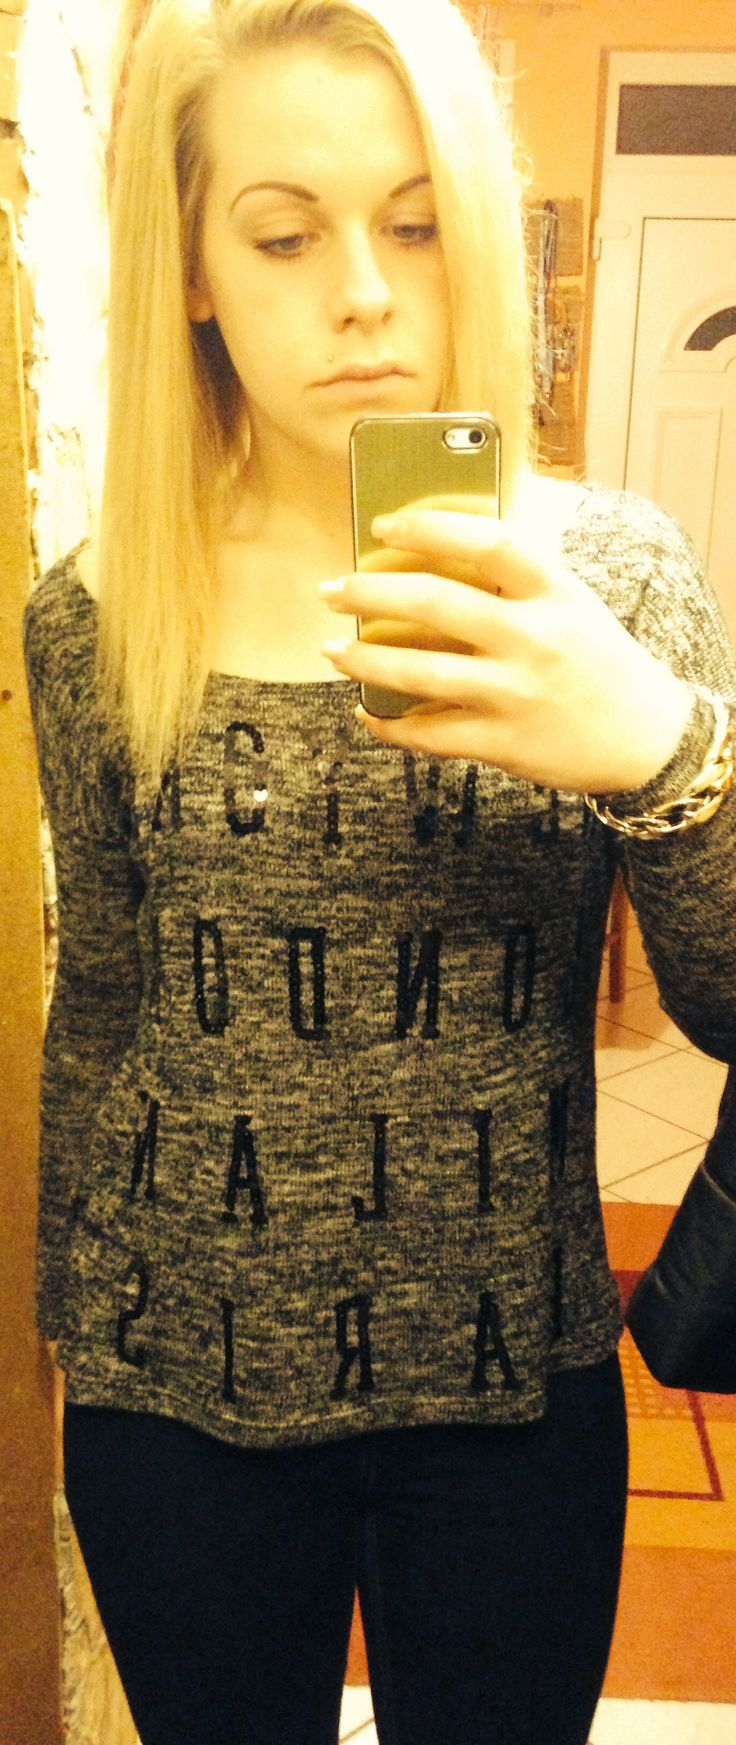 #selfie #outfit #tallyweijl #fashion